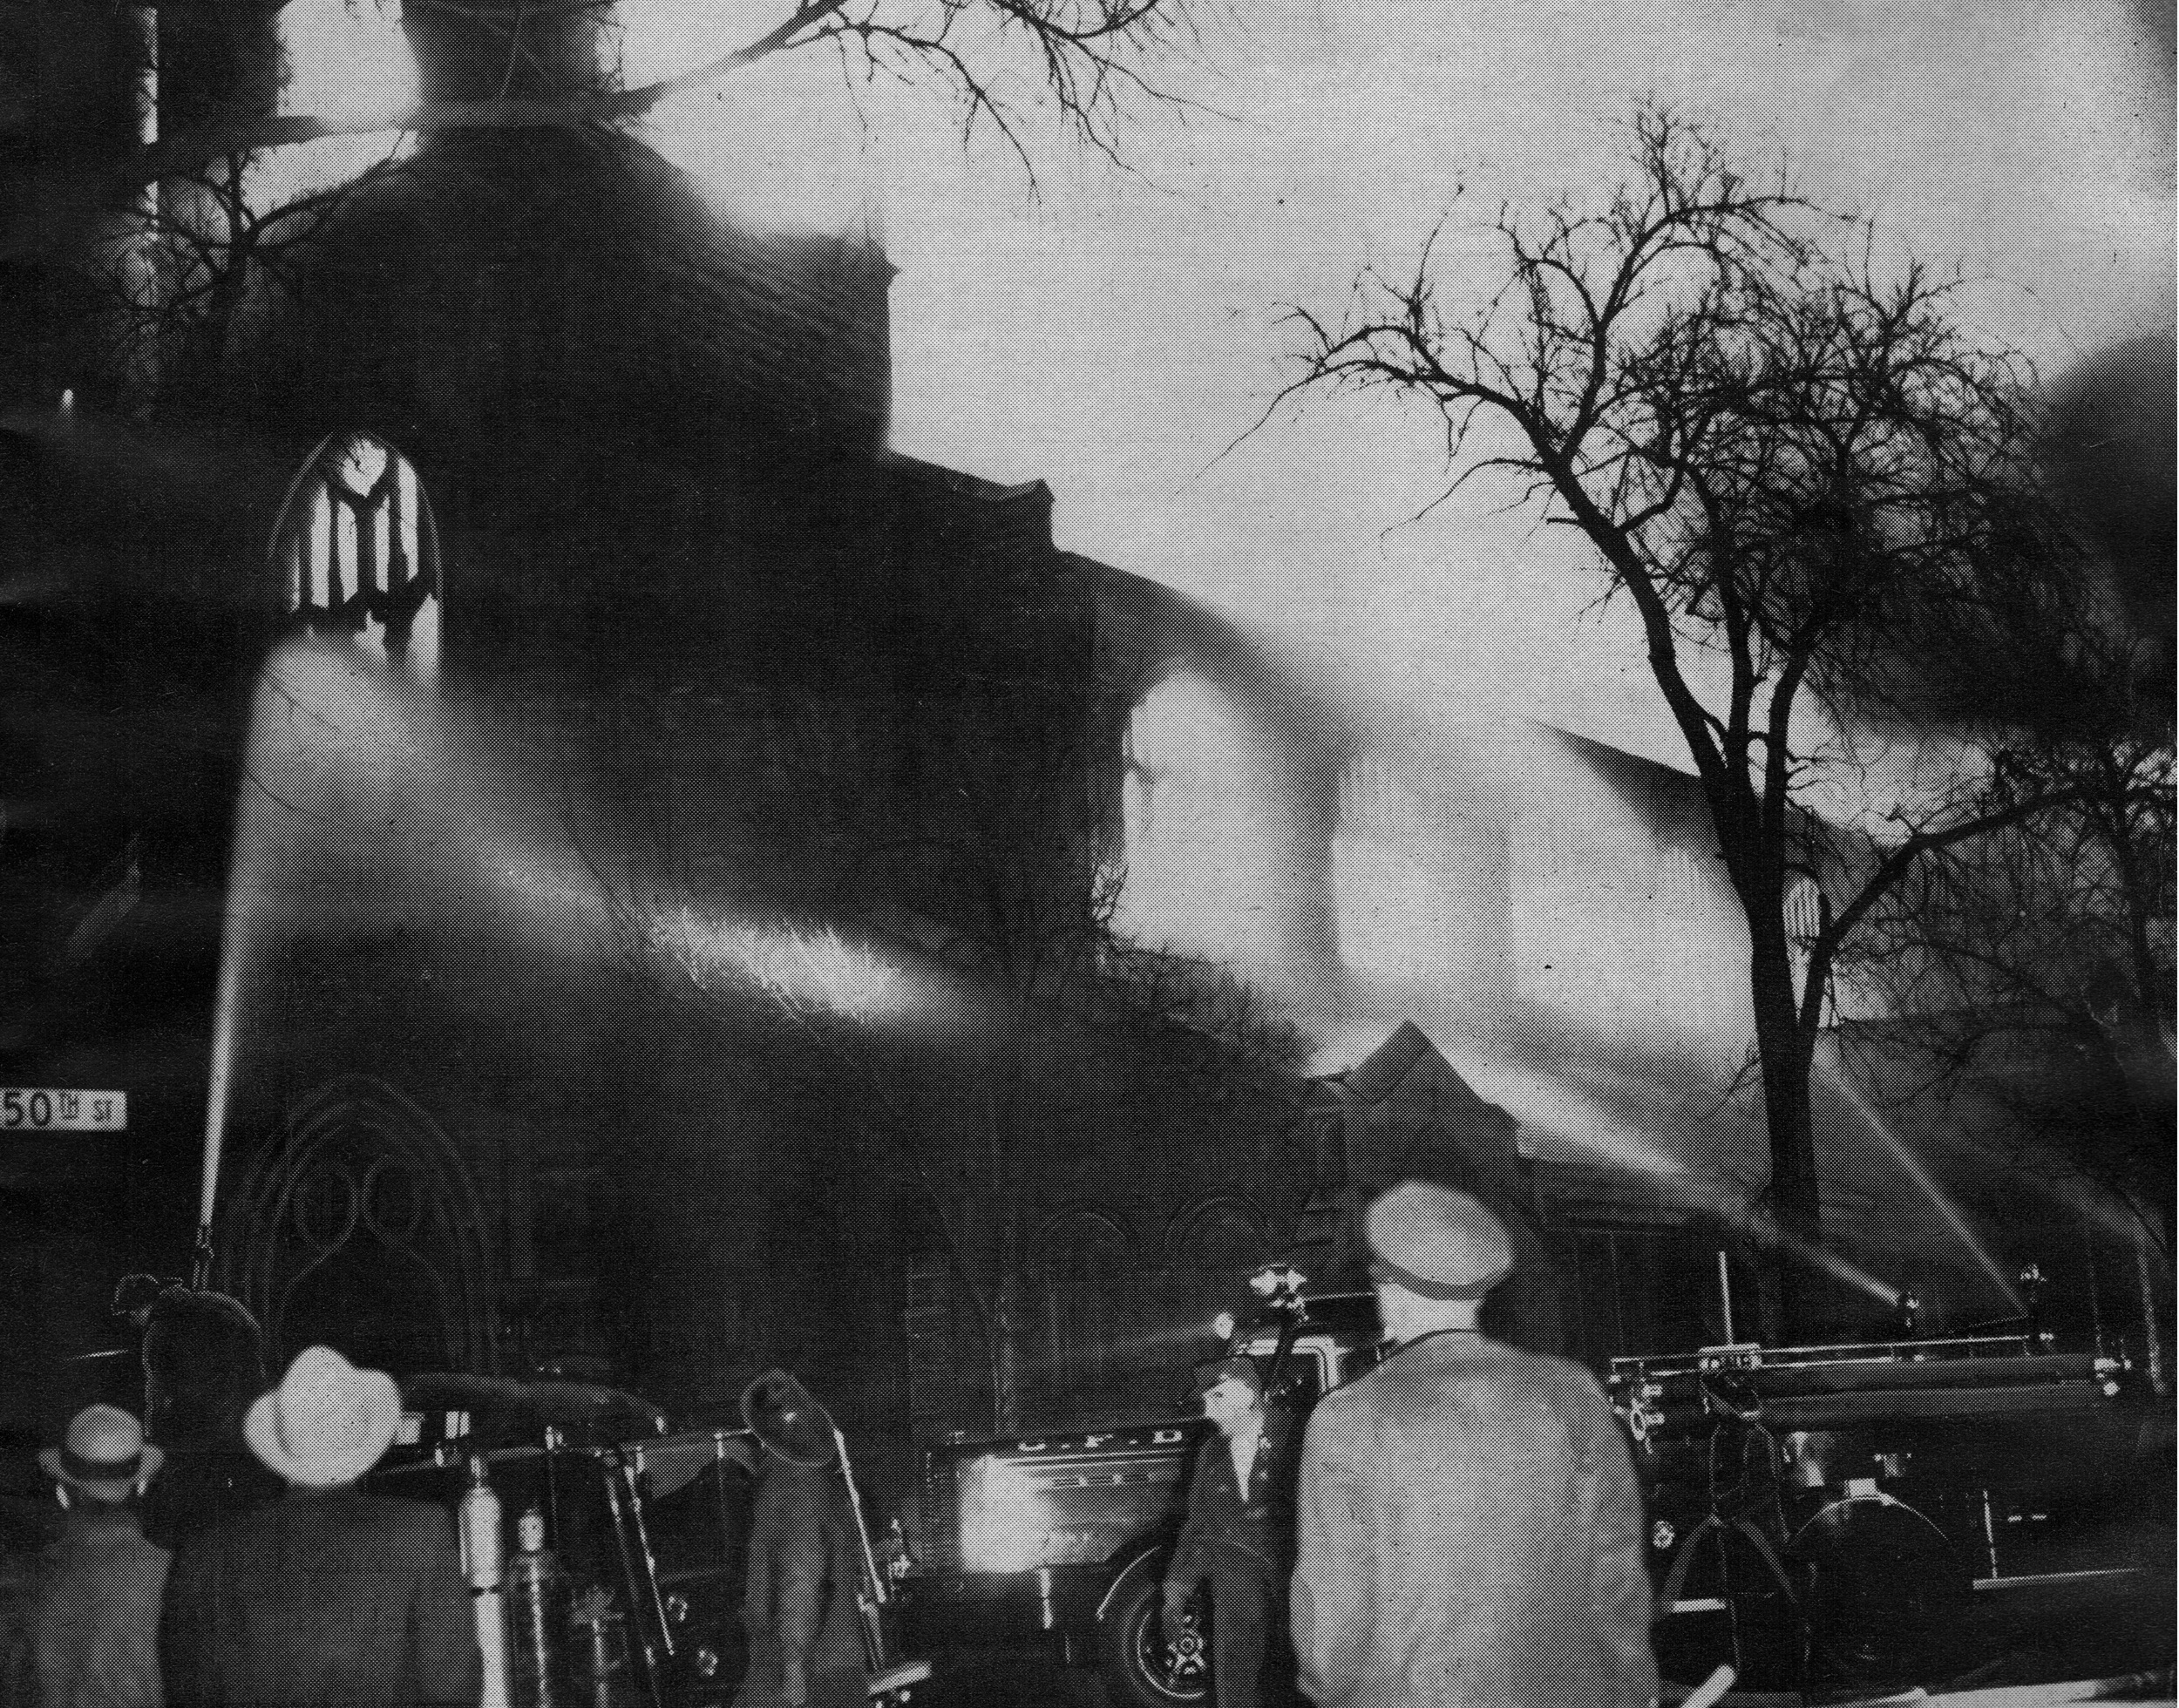 The fire that destroyed the St. Paul's building in 1956.